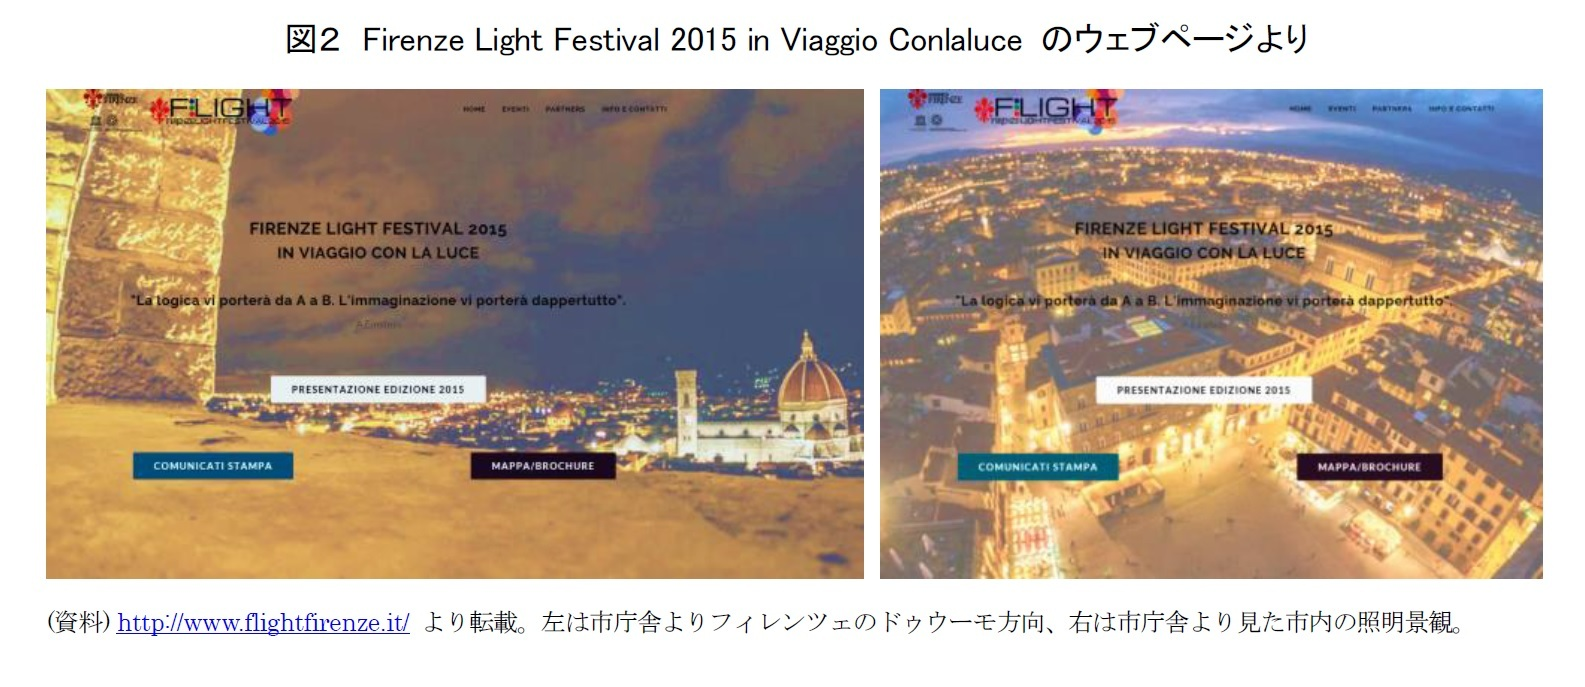 図2 Firenze Light Festival 2015 in Viaggio Conlaluce のウェブページより